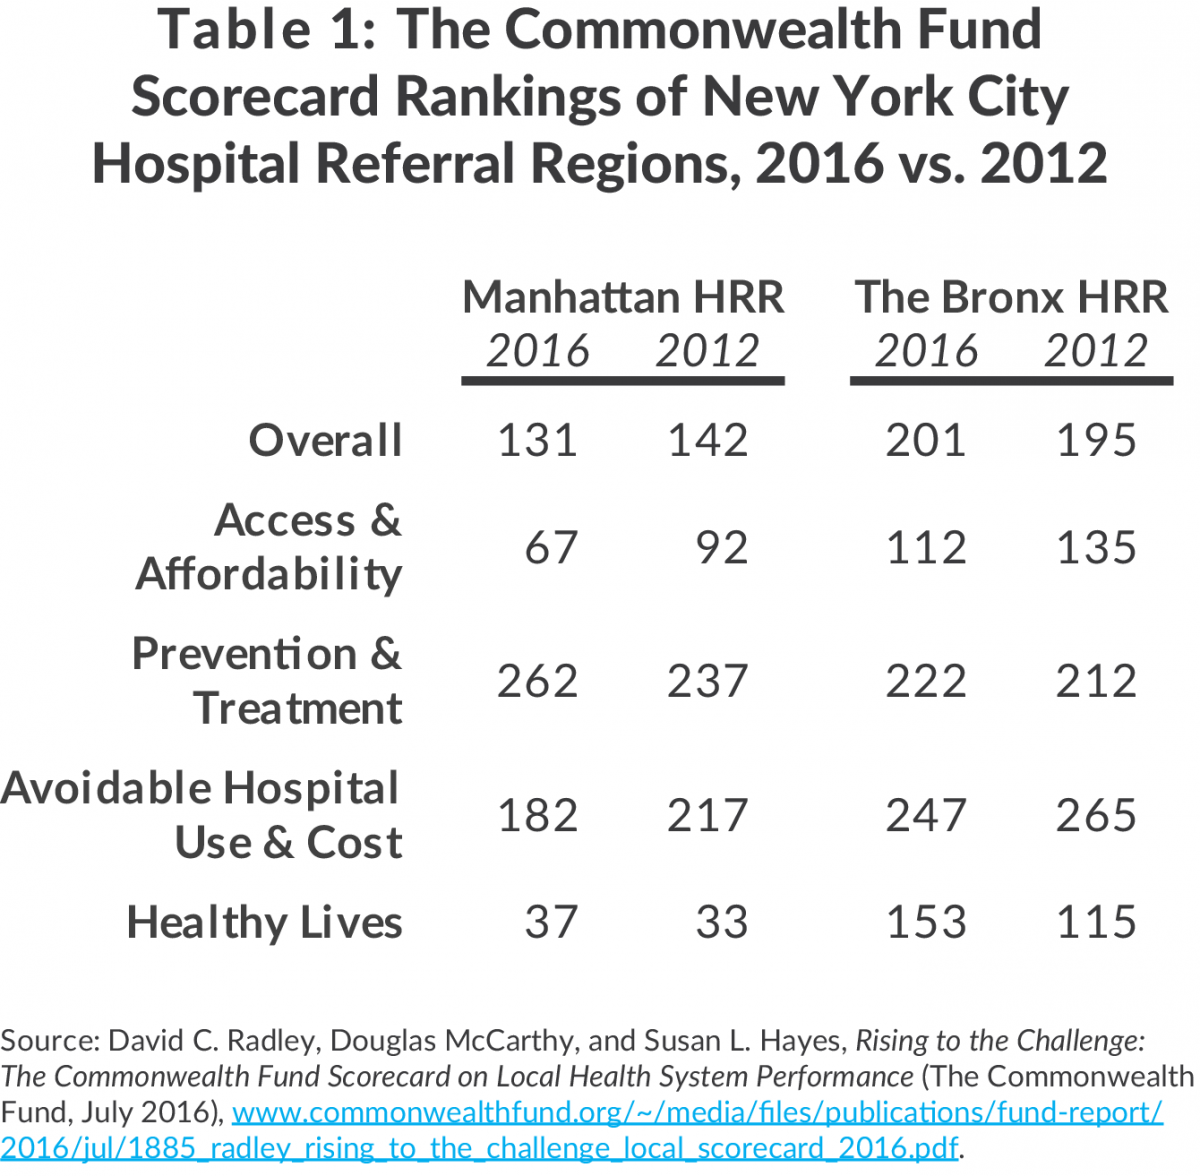 Table 1: The Commonwealth Fund Scorecard Rankings of New York City Hospital Referral Regions, 2016 vs. 2012